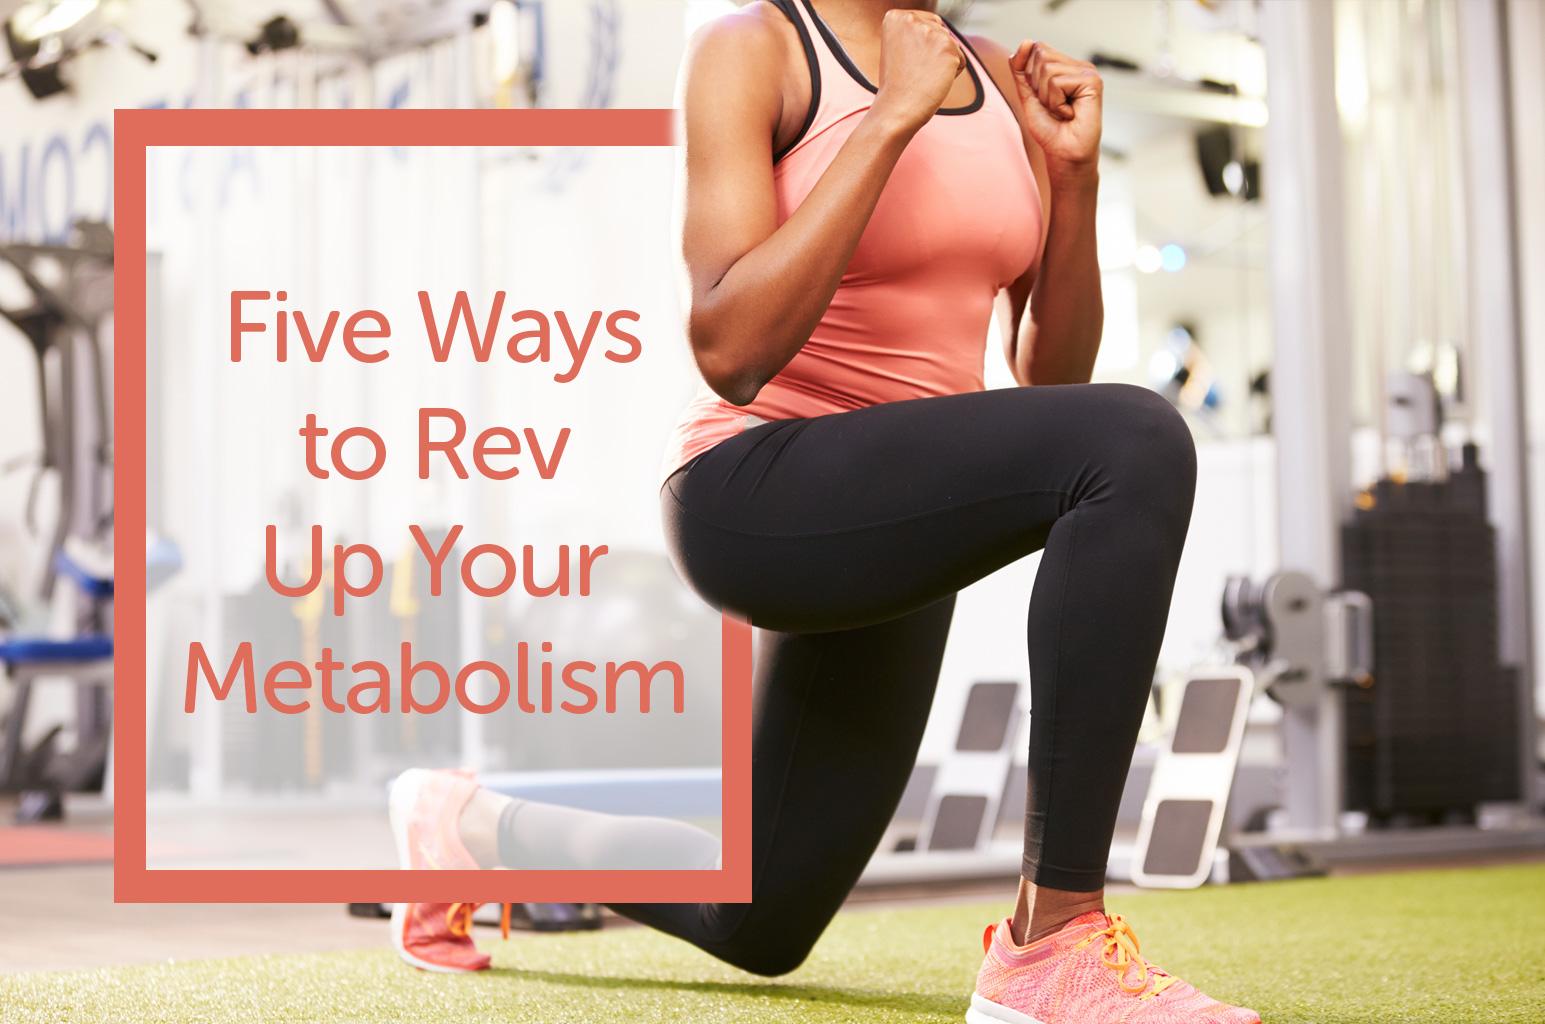 Five Ways to Rev Up Your Metabolism